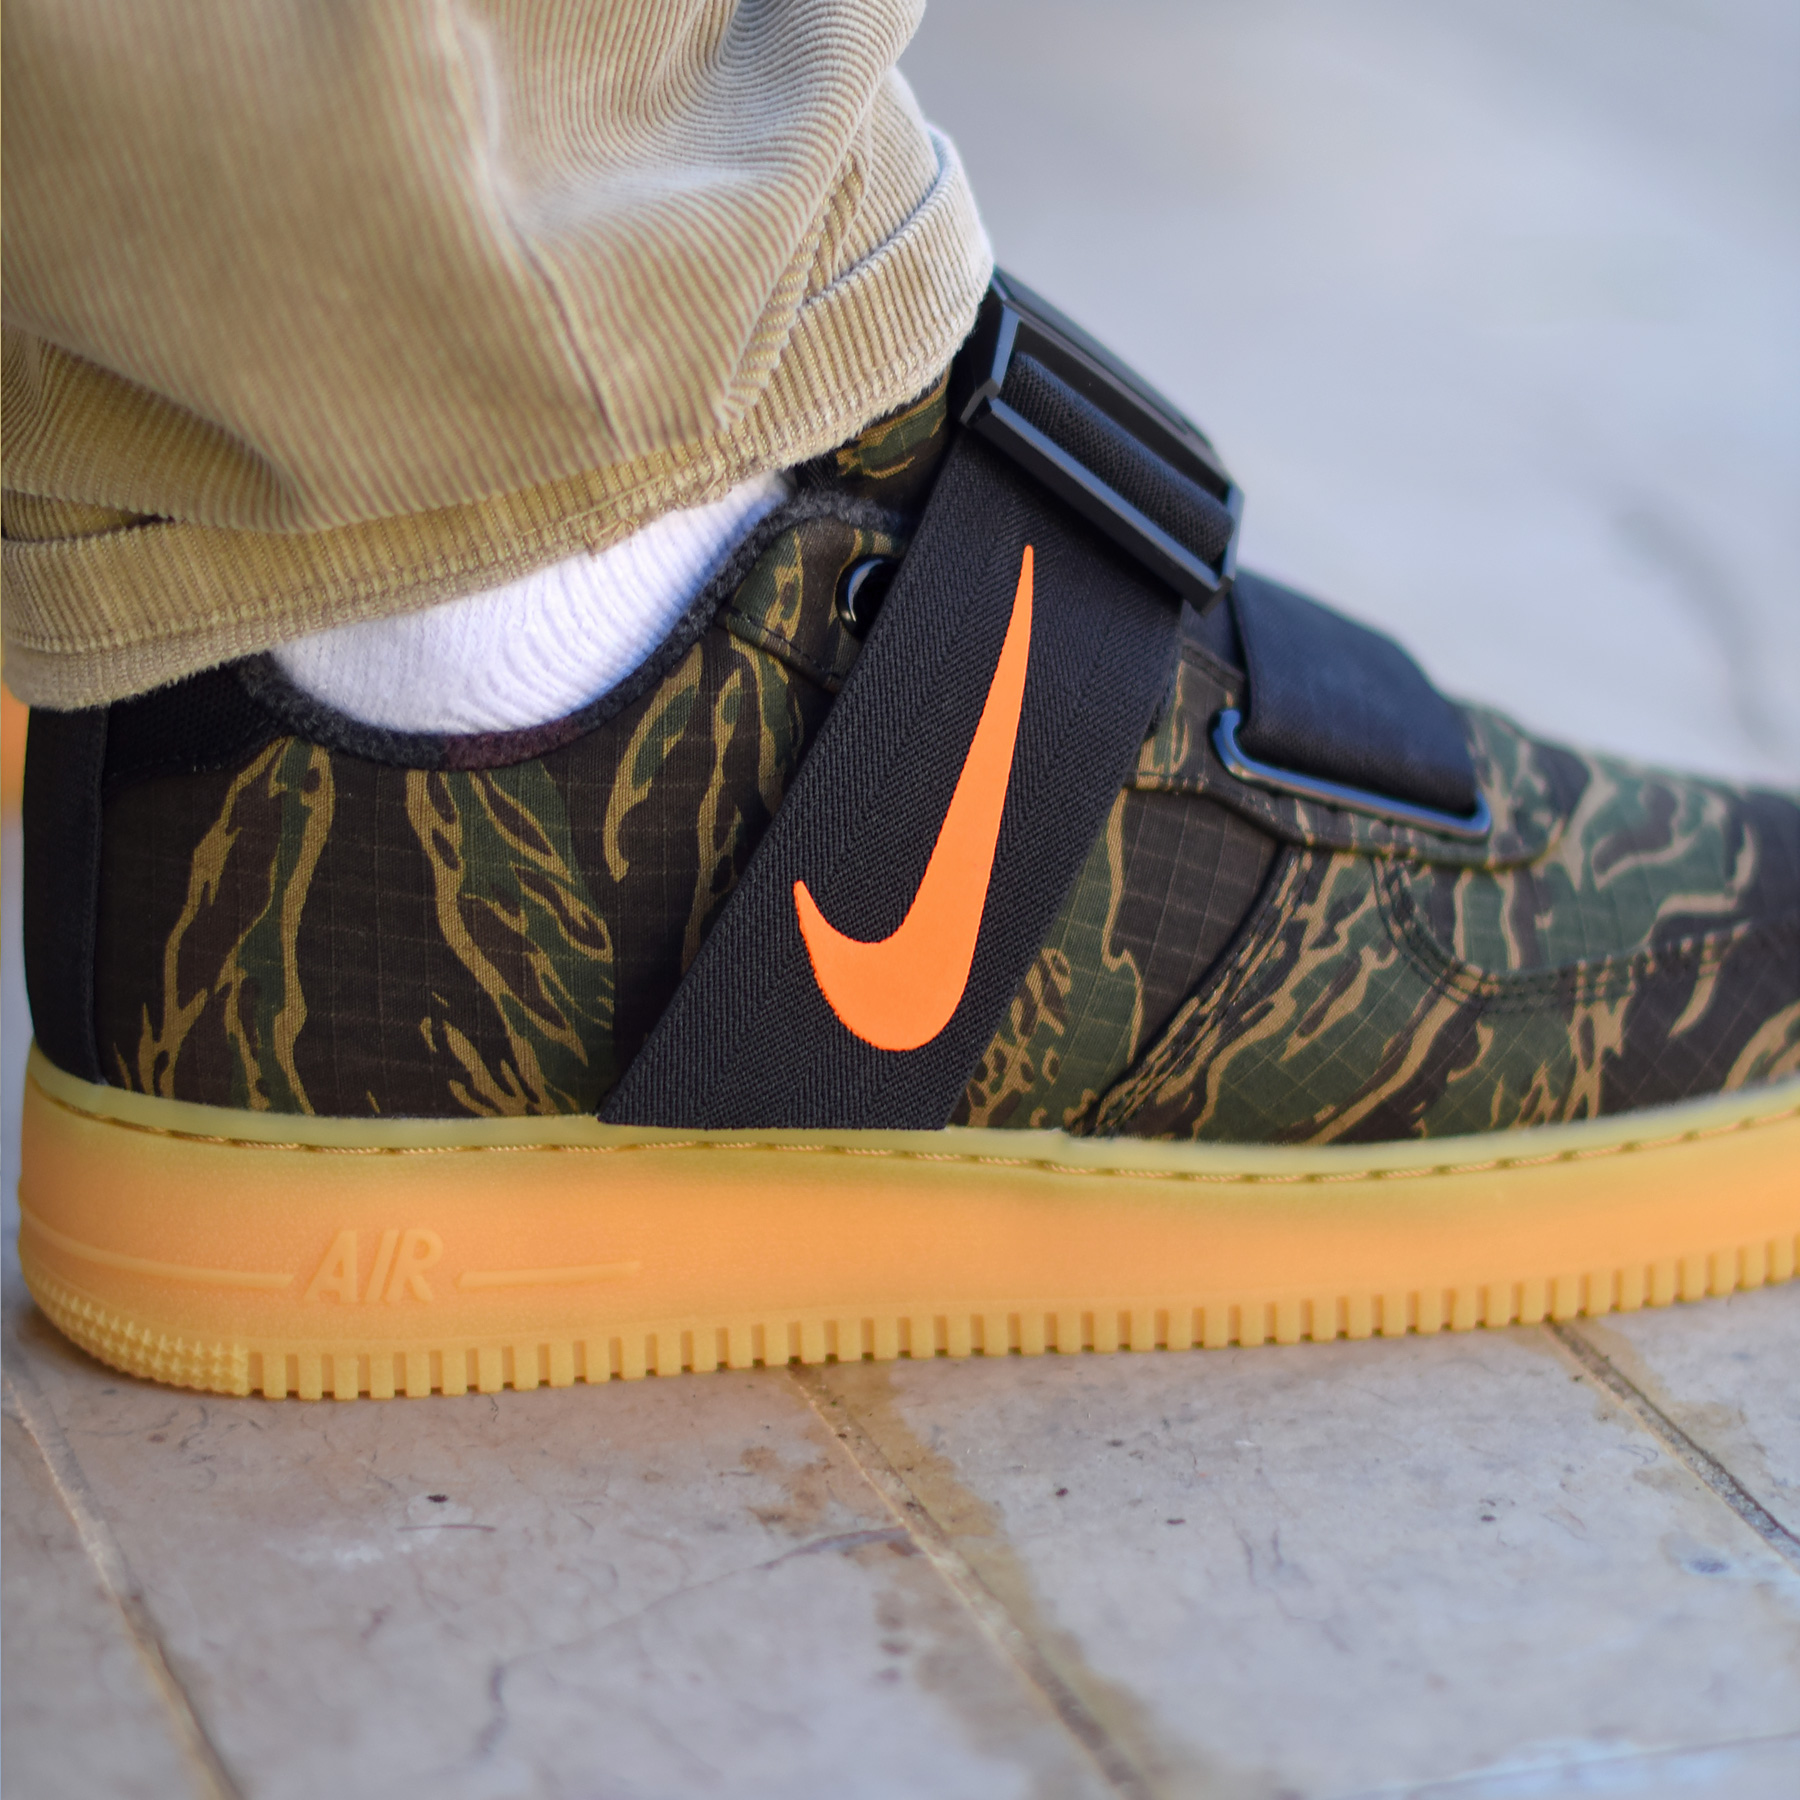 Carhartt WIP x Nike Air Force 1 Utility